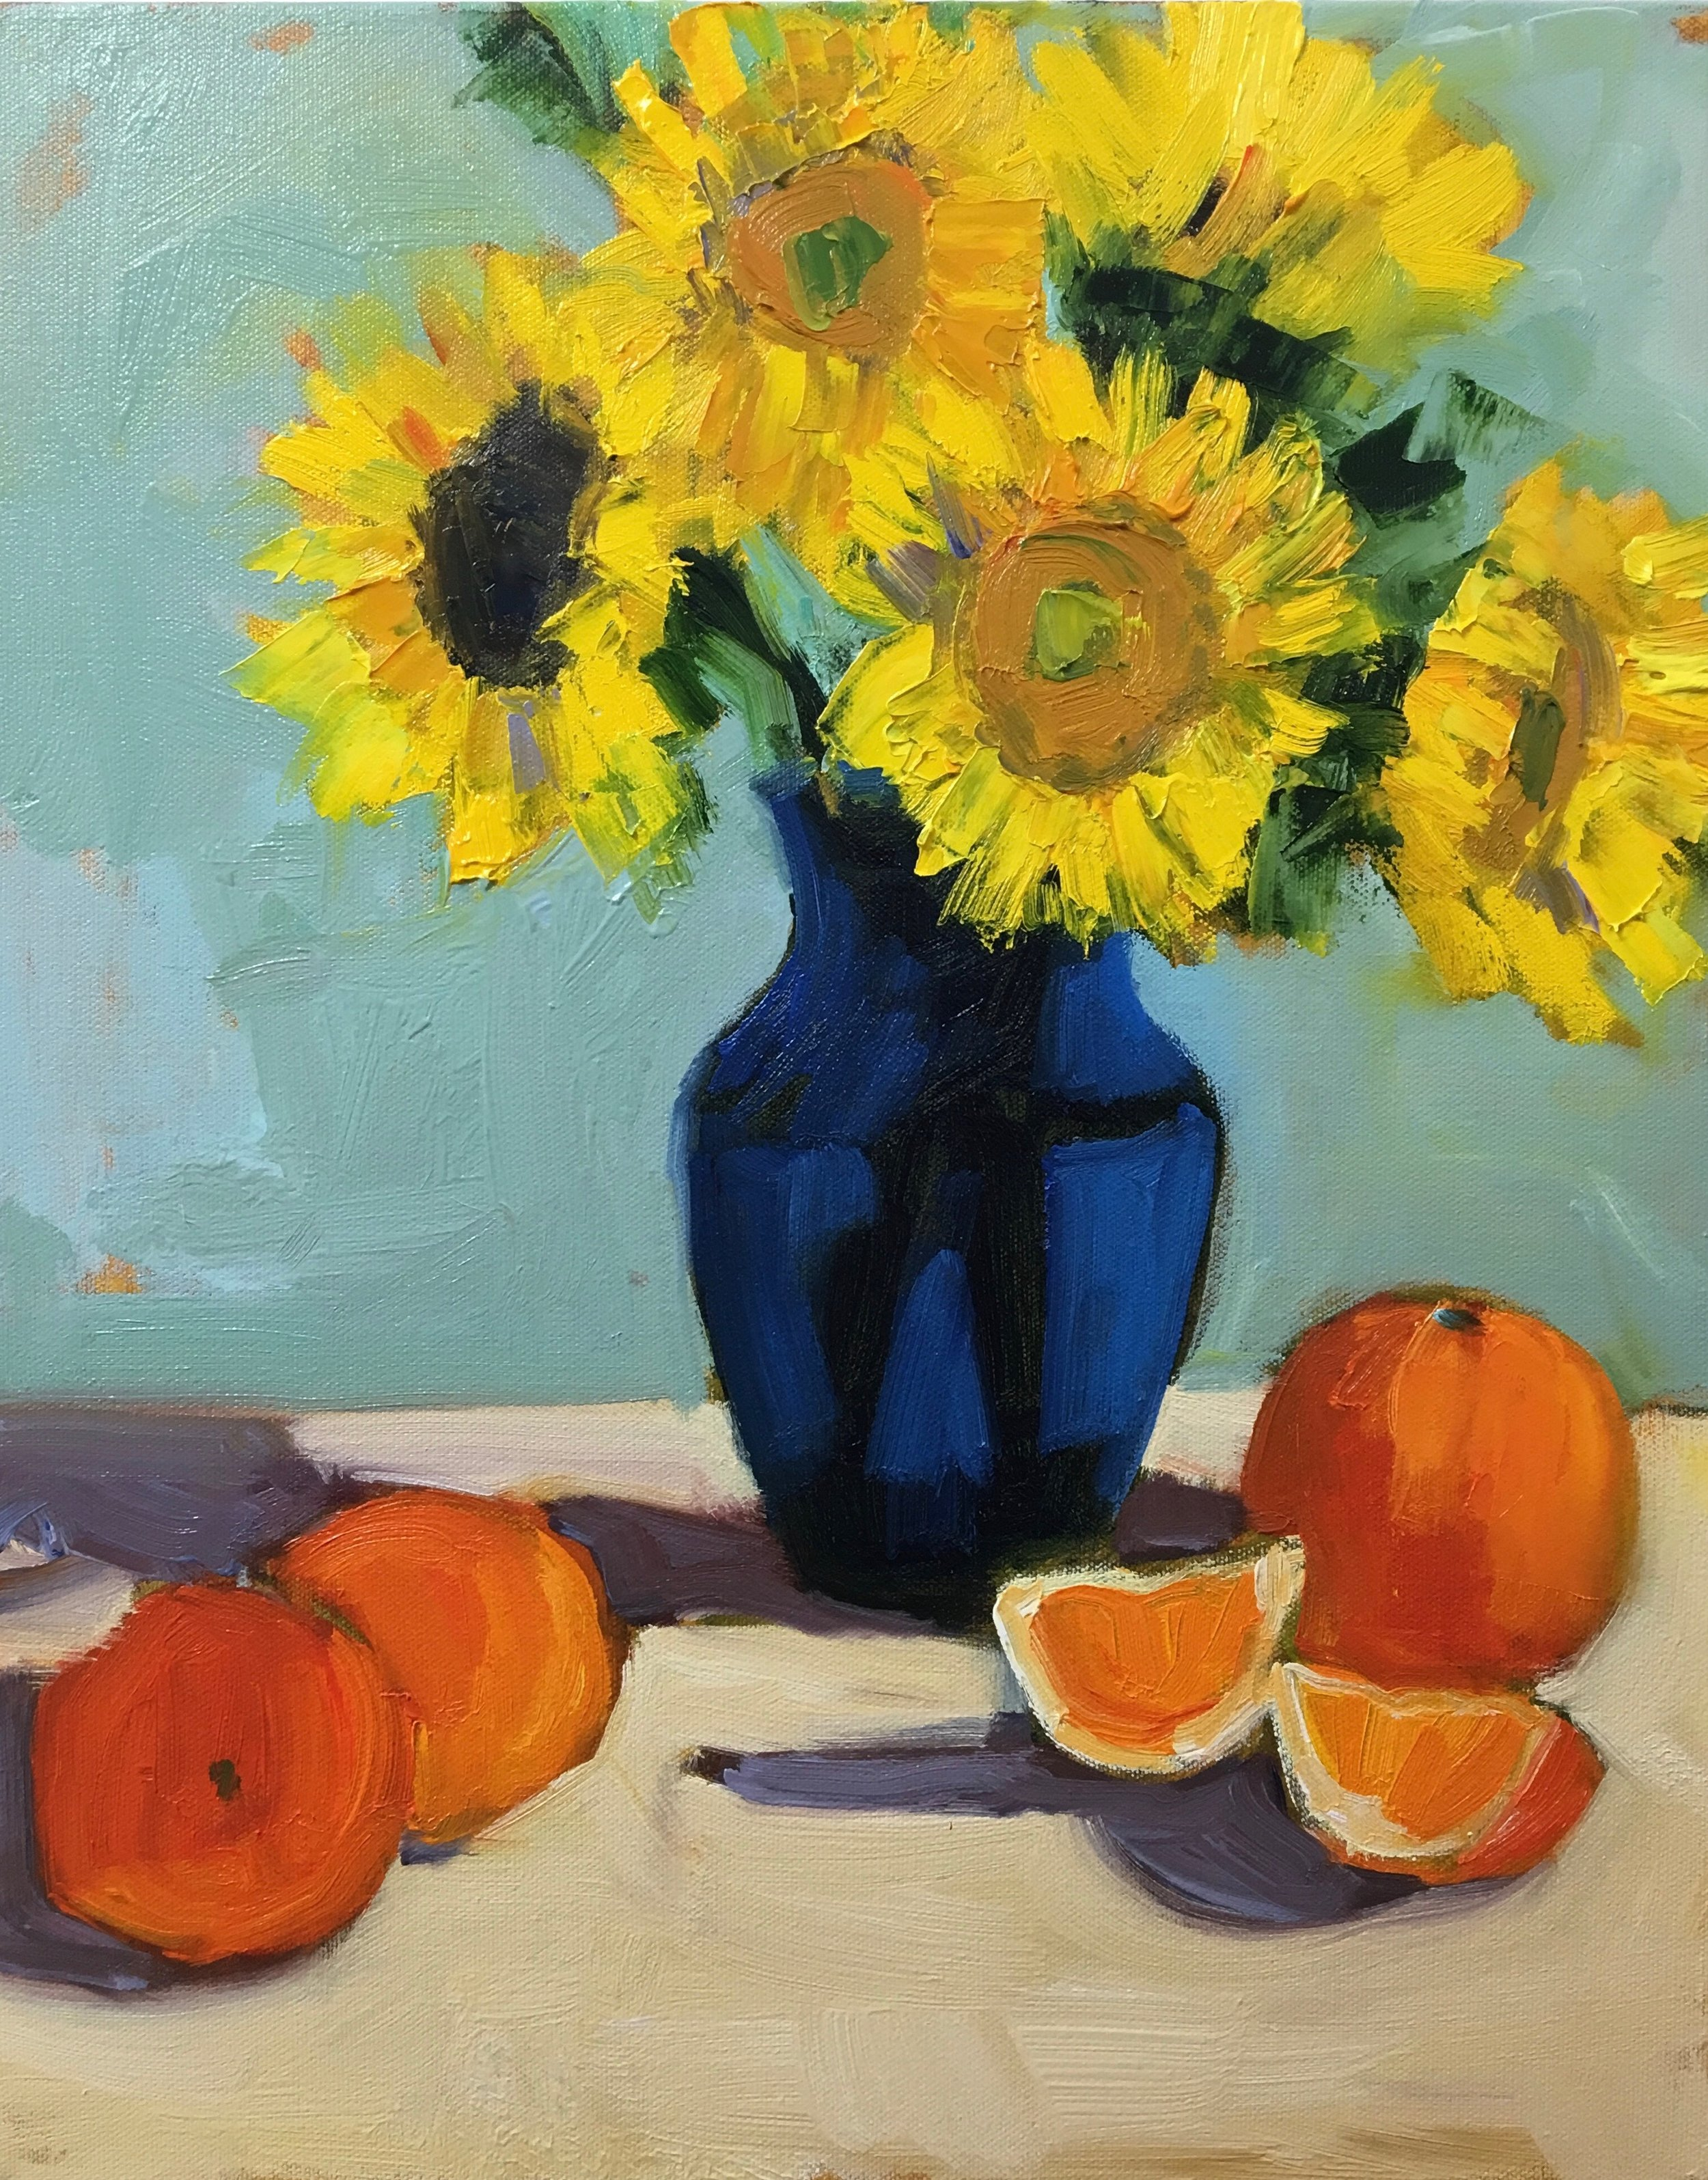 """DEMO FROM """"LOVE YOUR OILS"""" SERIES, THE FUNDAMENTALS OF OIL PAINTING #OP101"""